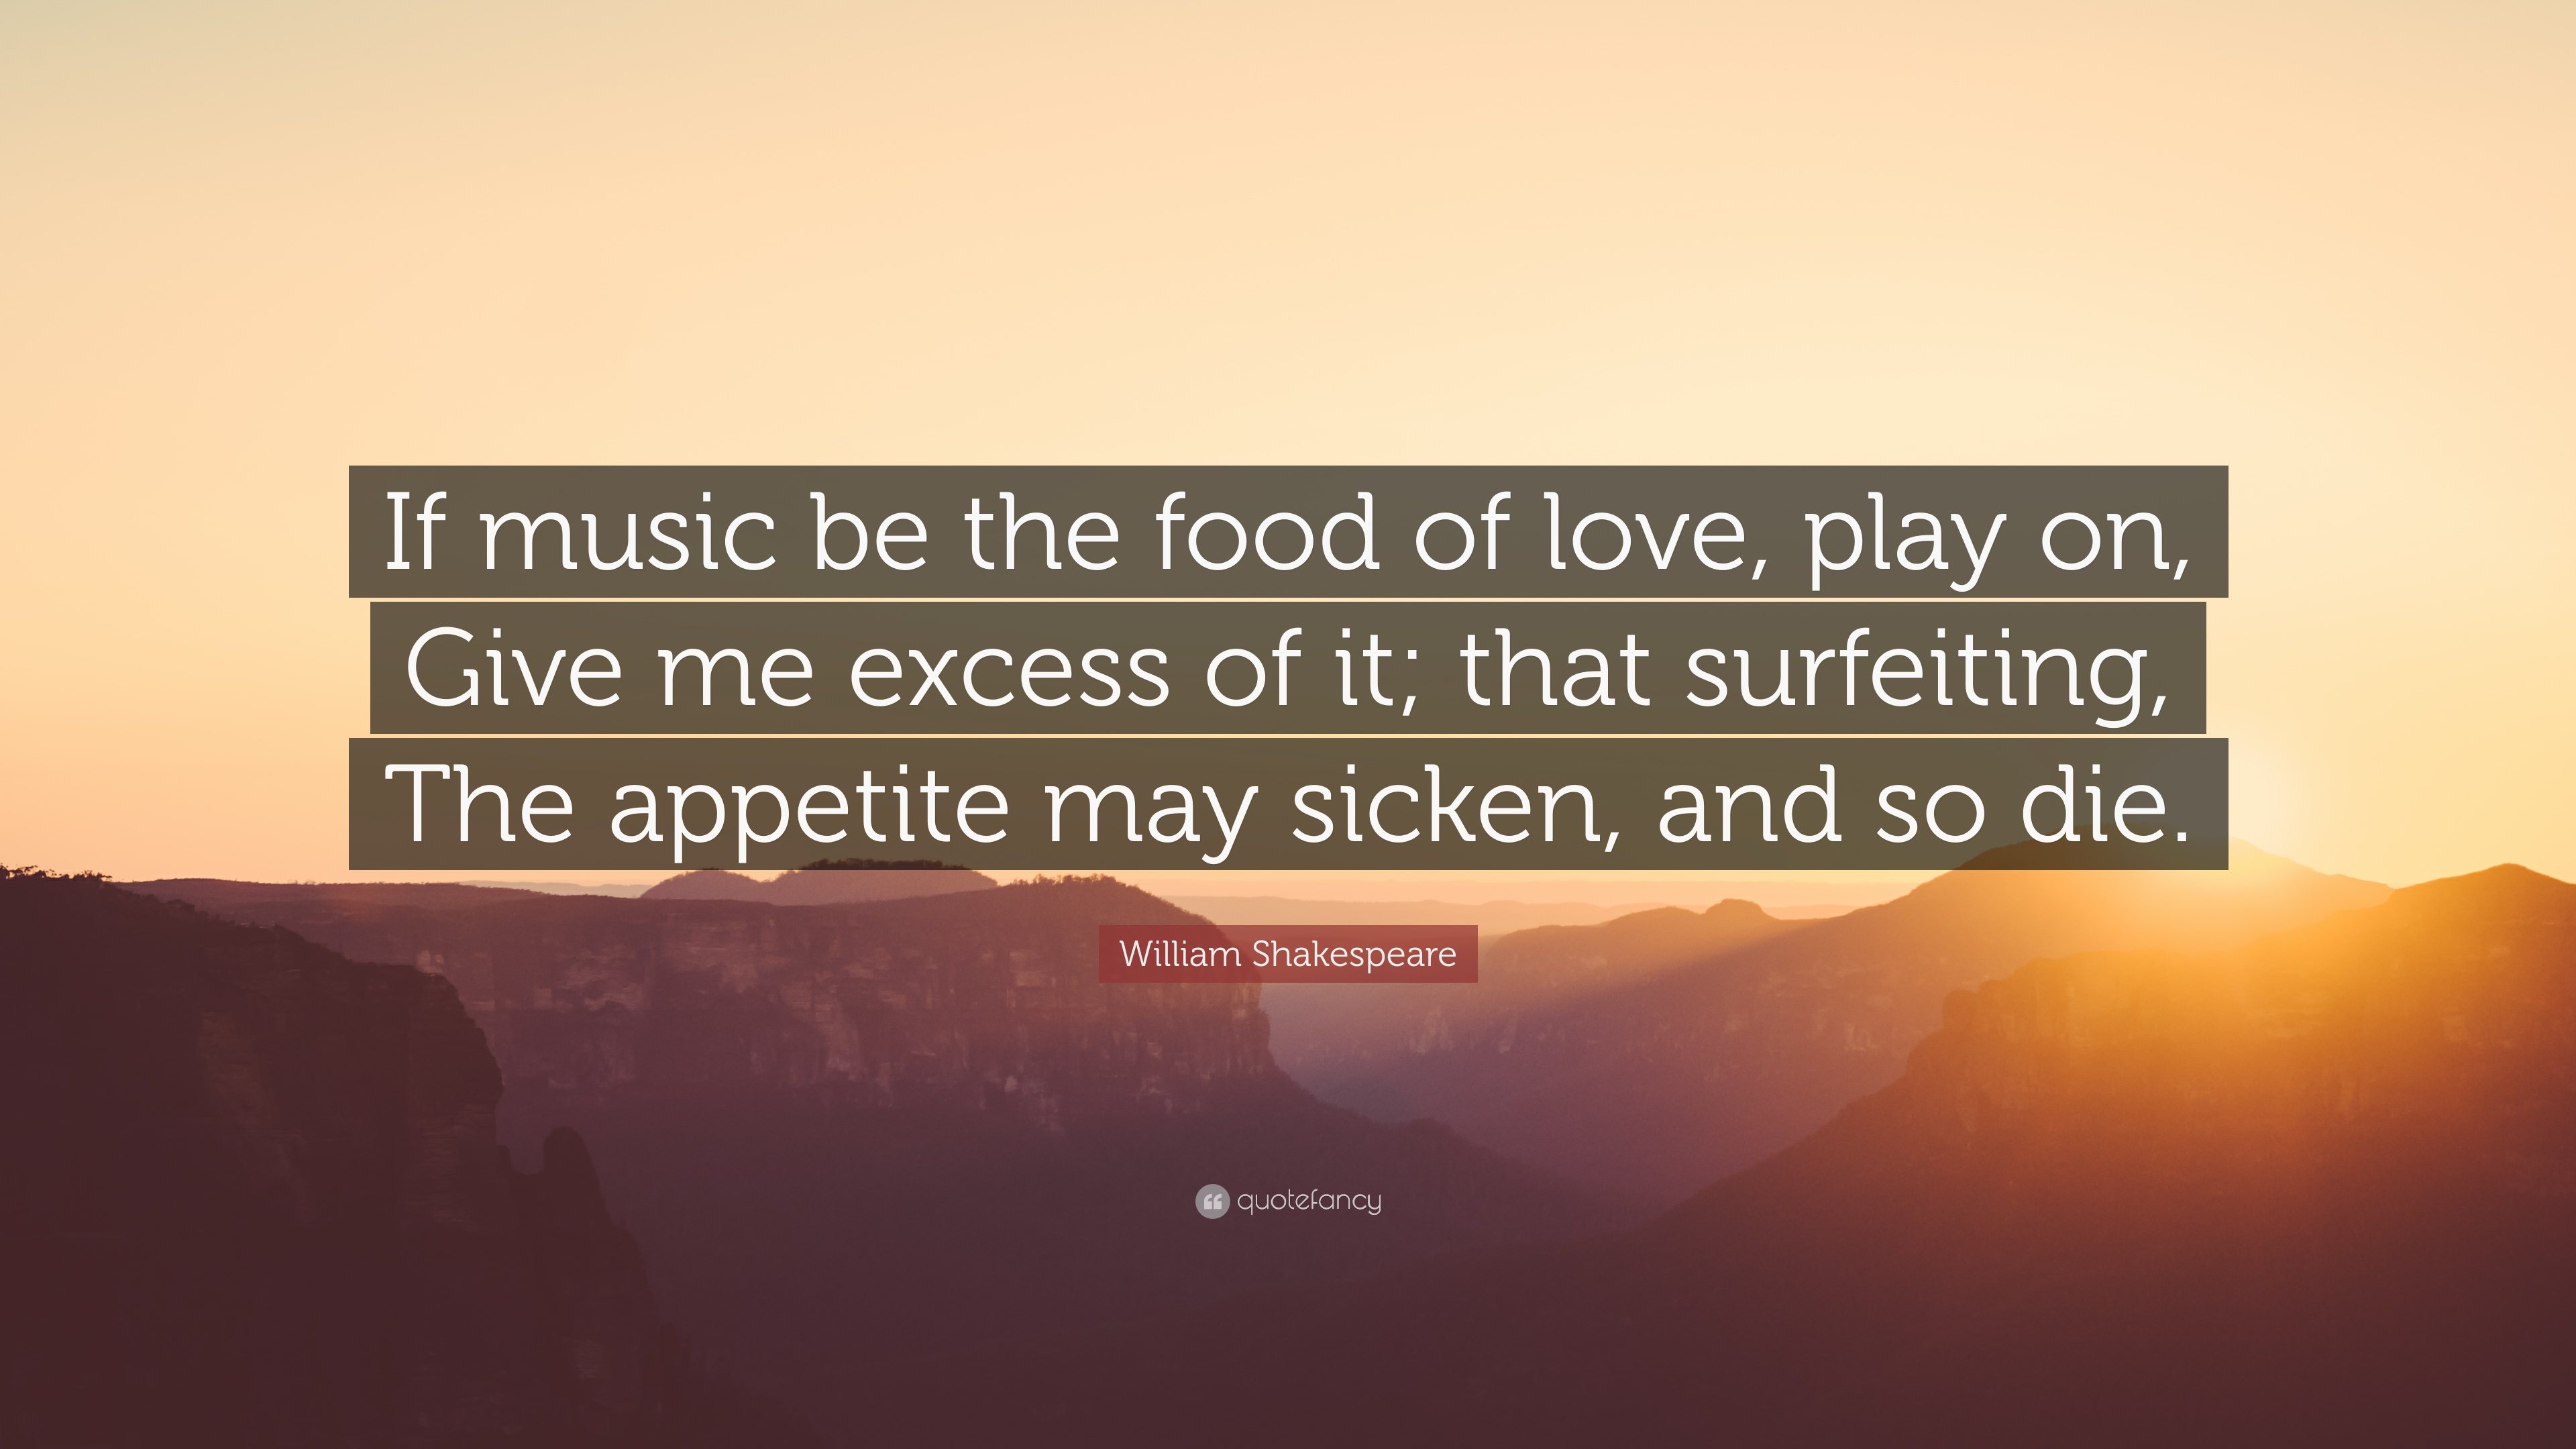 love and play Play quotes from brainyquote, an extensive collection of quotations by famous  authors, celebrities, and newsmakers  if music be the food of love, play on.